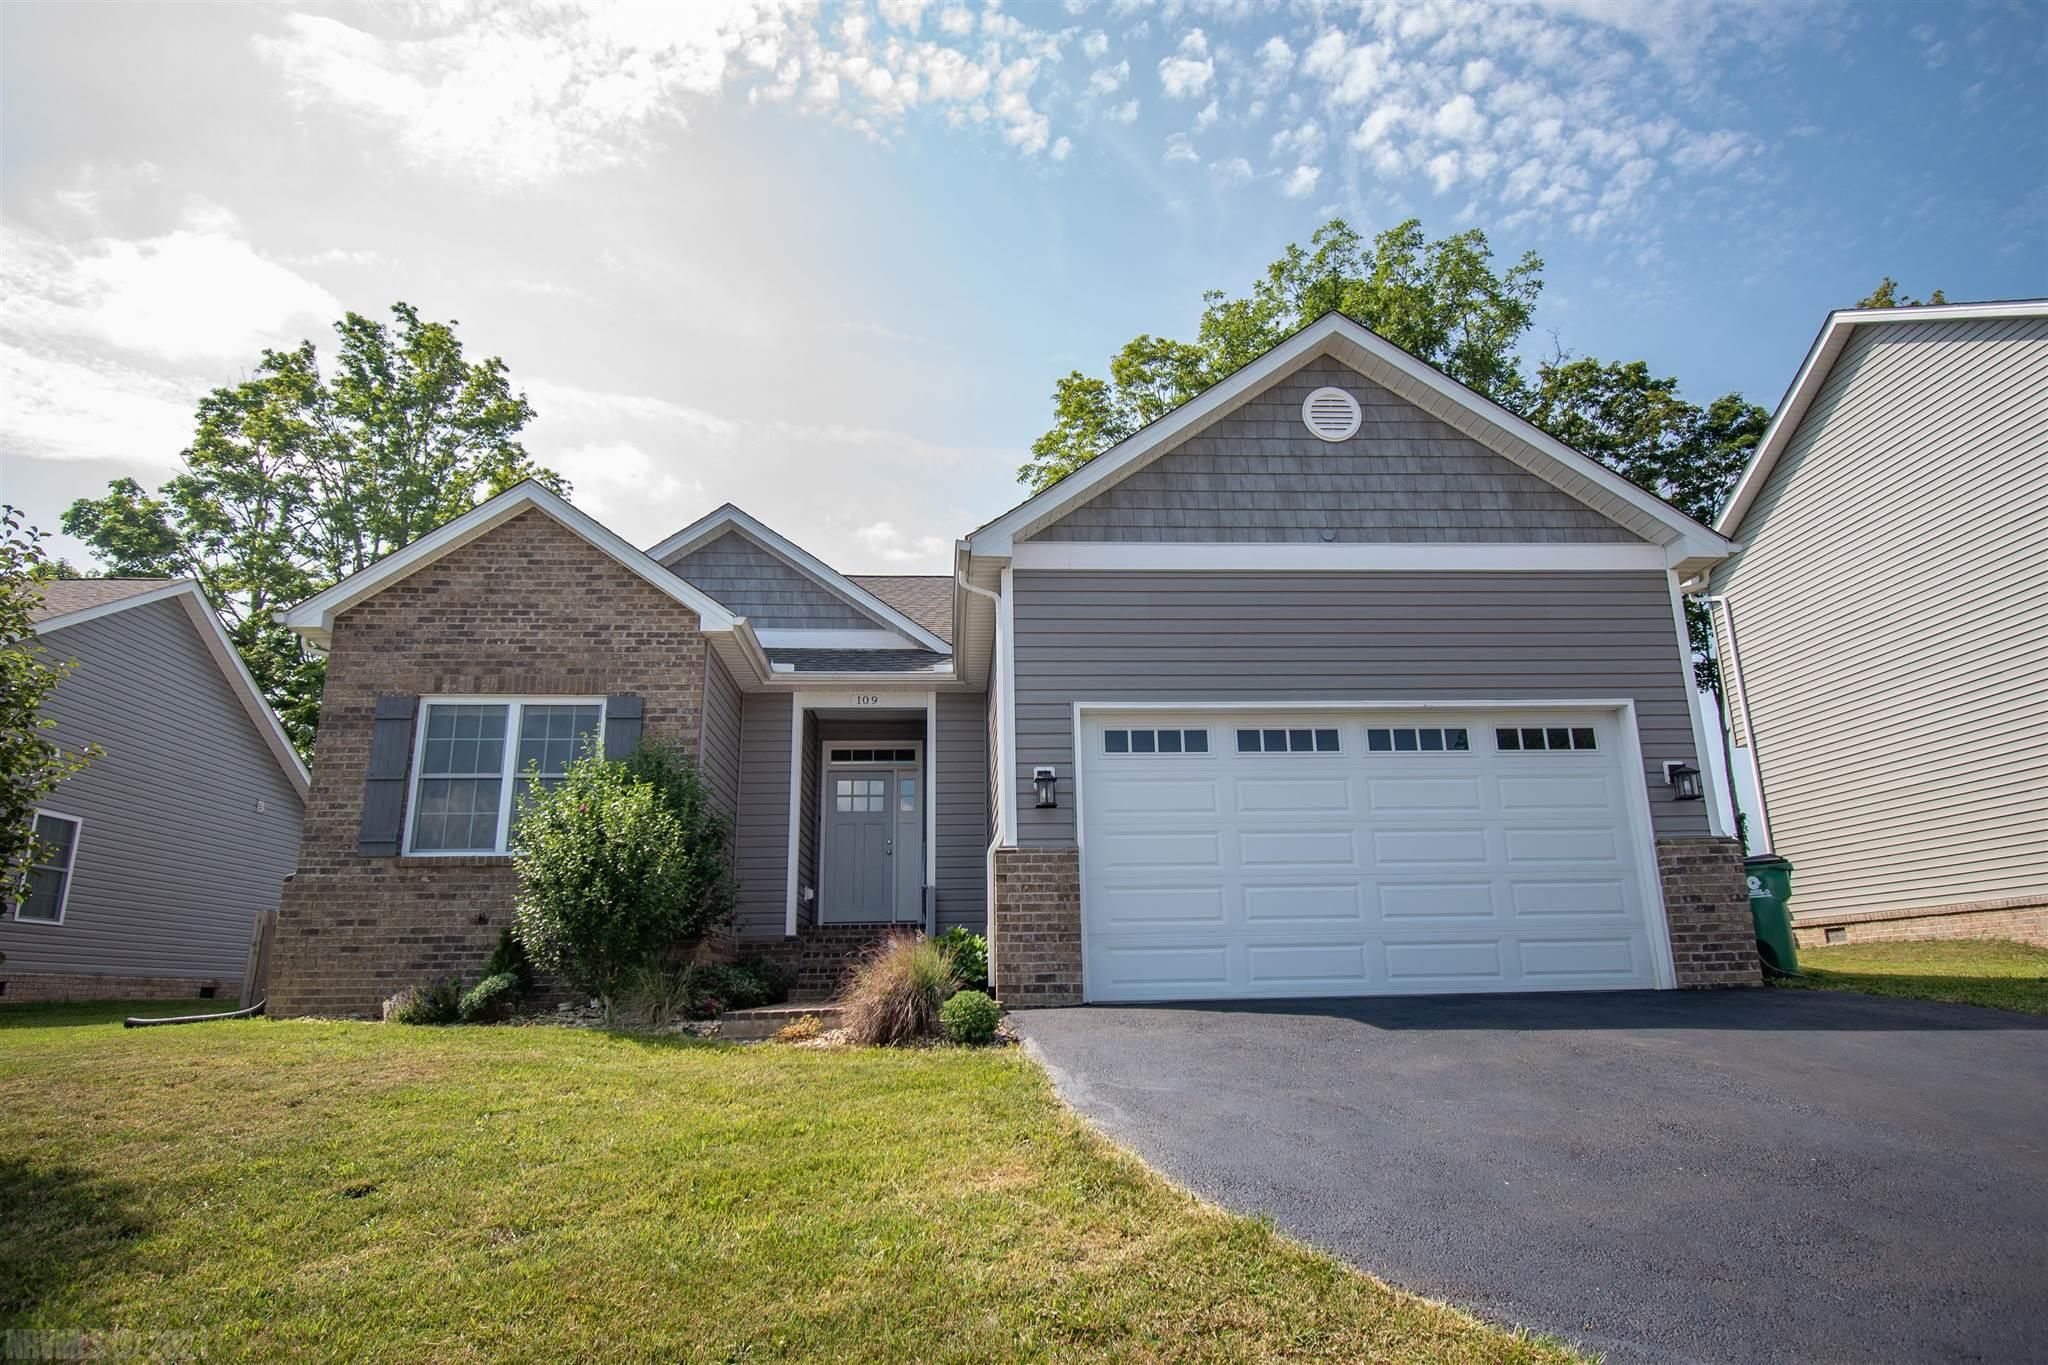 One owner, single-level layout home in a desirable Blacksburg location! Designer kitchen with granite  counters and plenty of bar space.  There are stylish hardwoods in open living areas, gas fireplace, 9 foot ceilings and a tray ceiling in the master.  The home is freshly painted and move in ready. Relax on the private back patio that overlooks a farm.    Washer, Dryer and Gas Grill are all included.